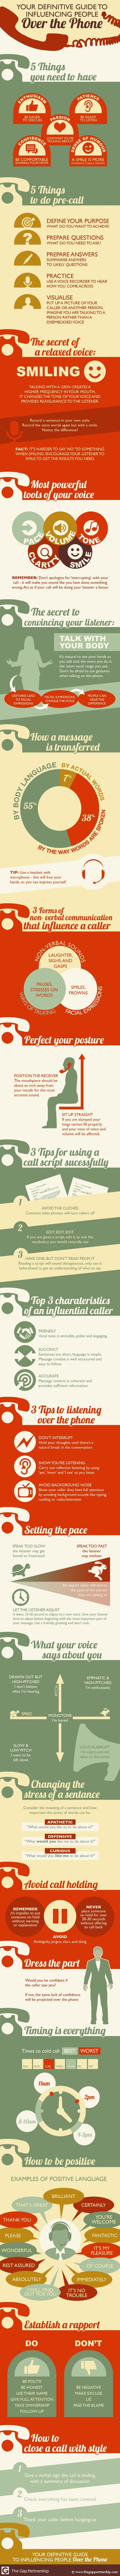 A Guide To Influencing People Over The Phone